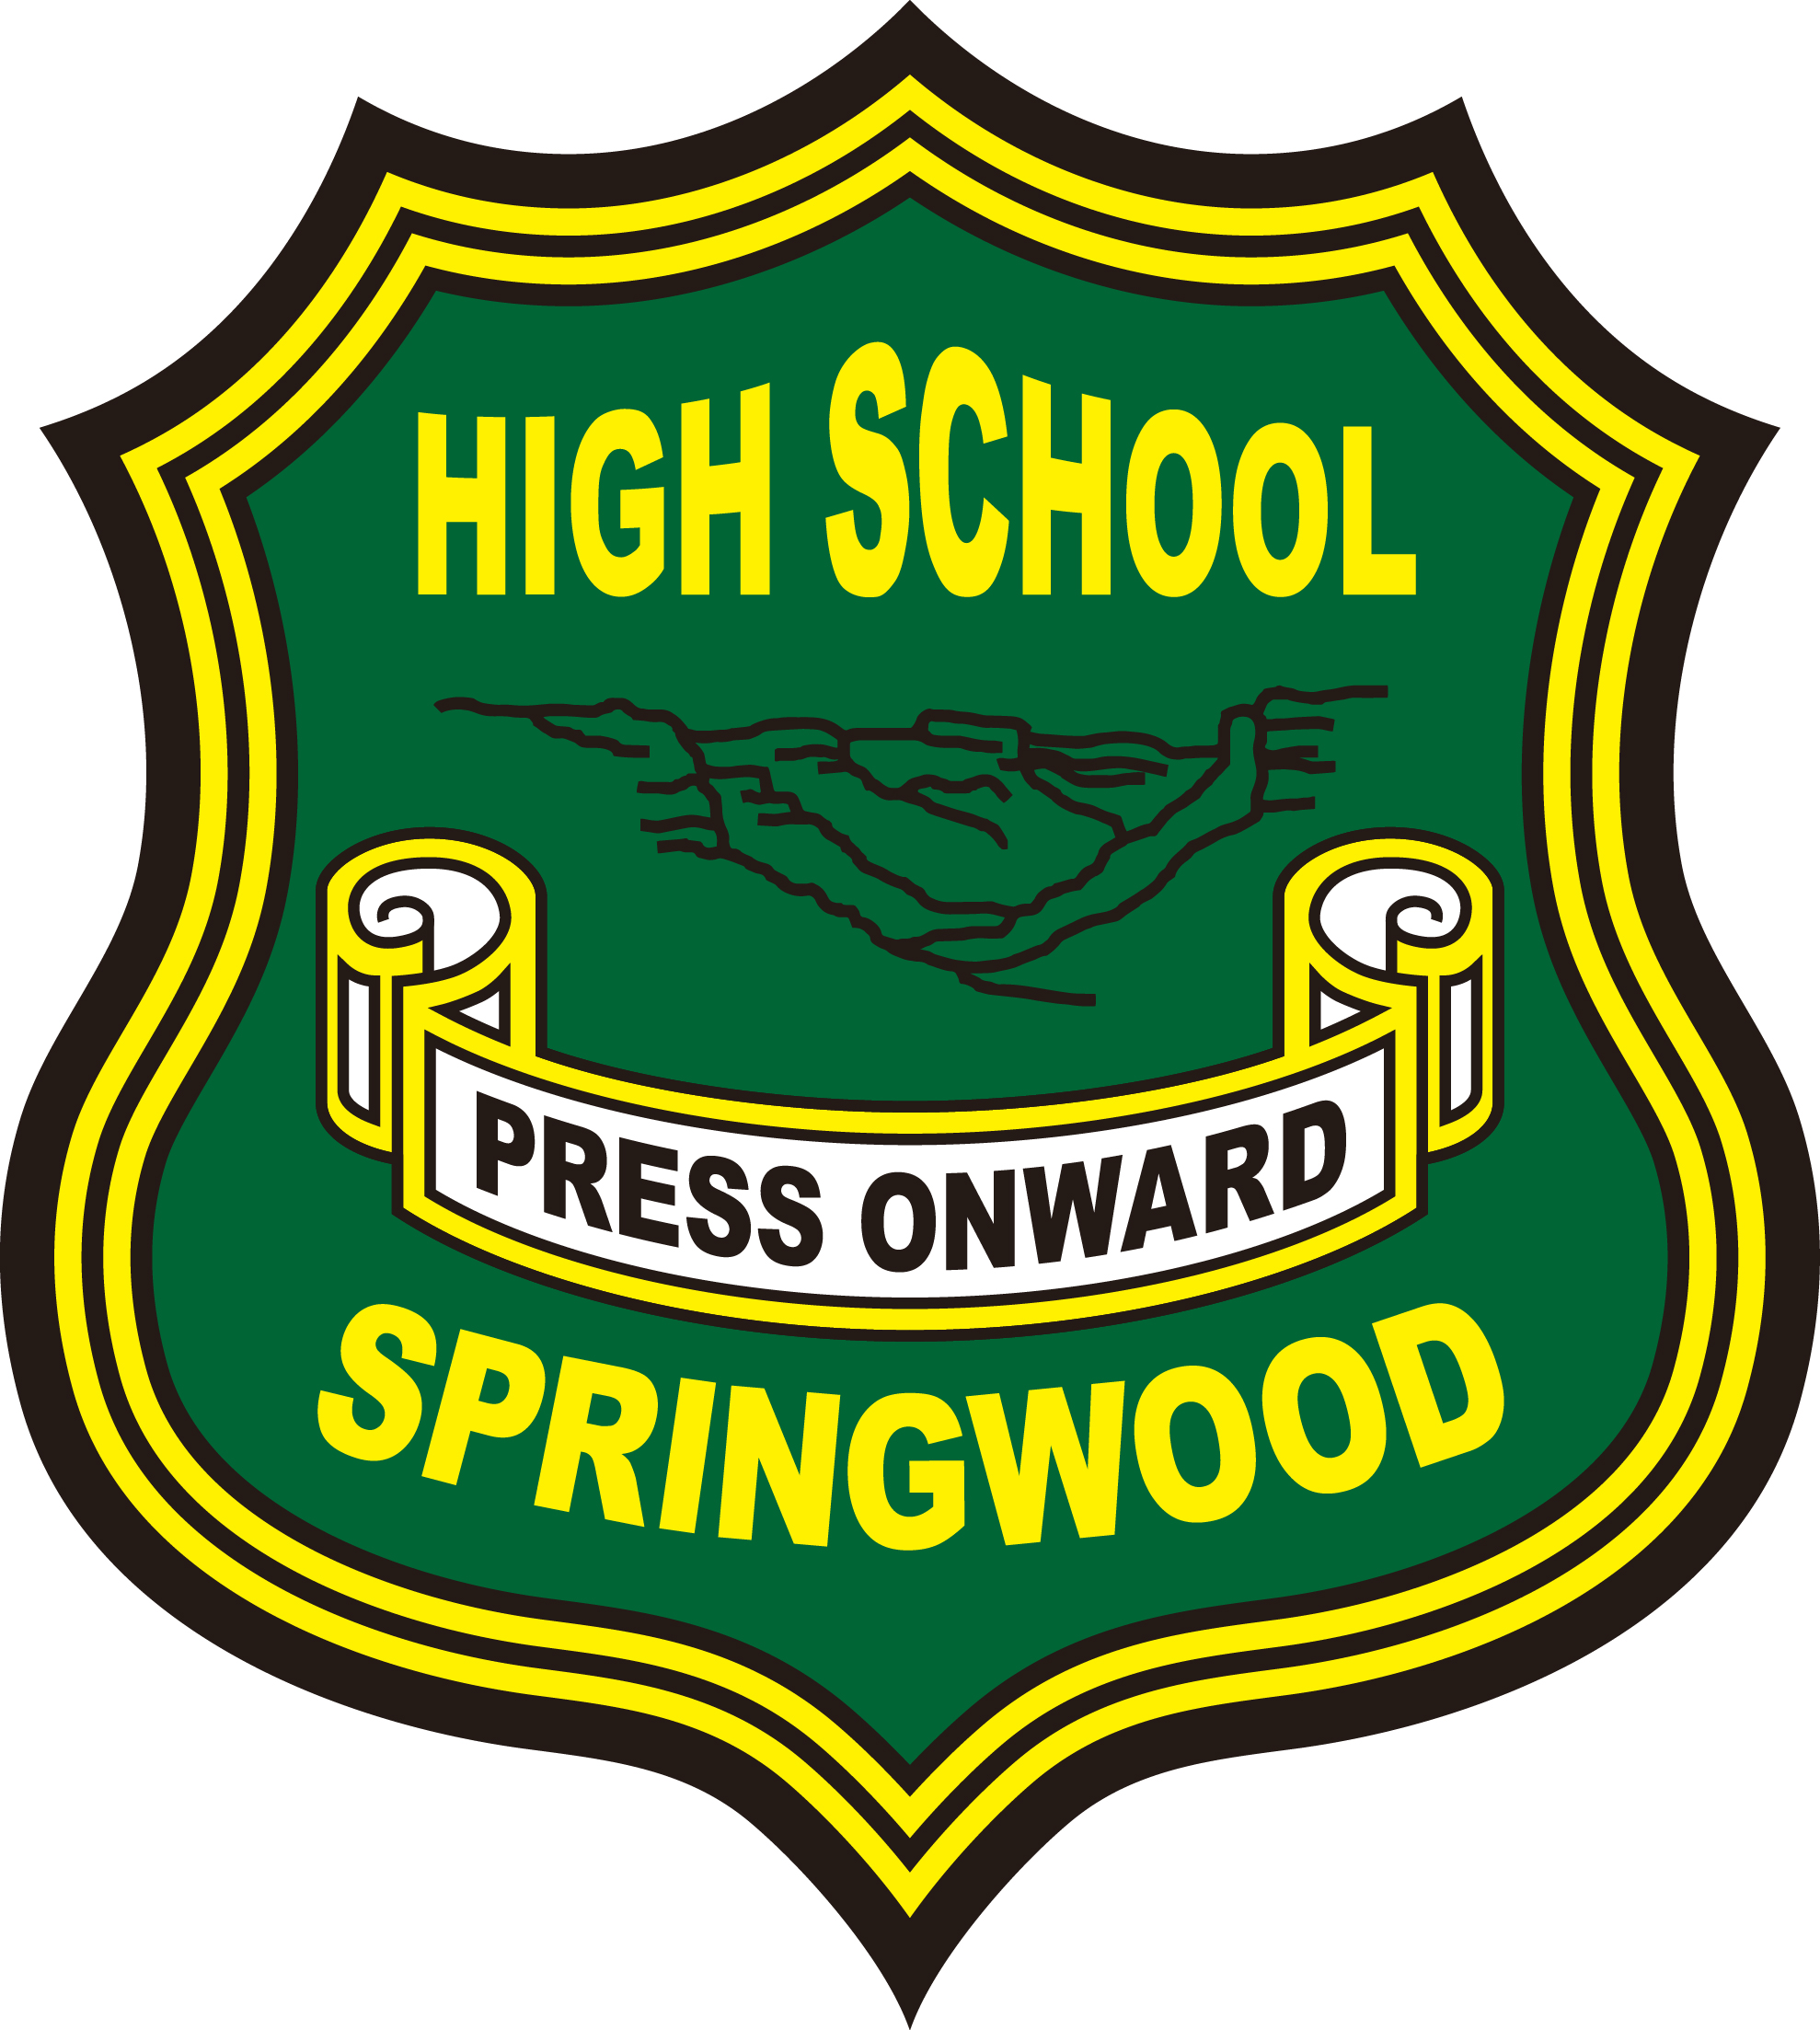 Springwood High School logo